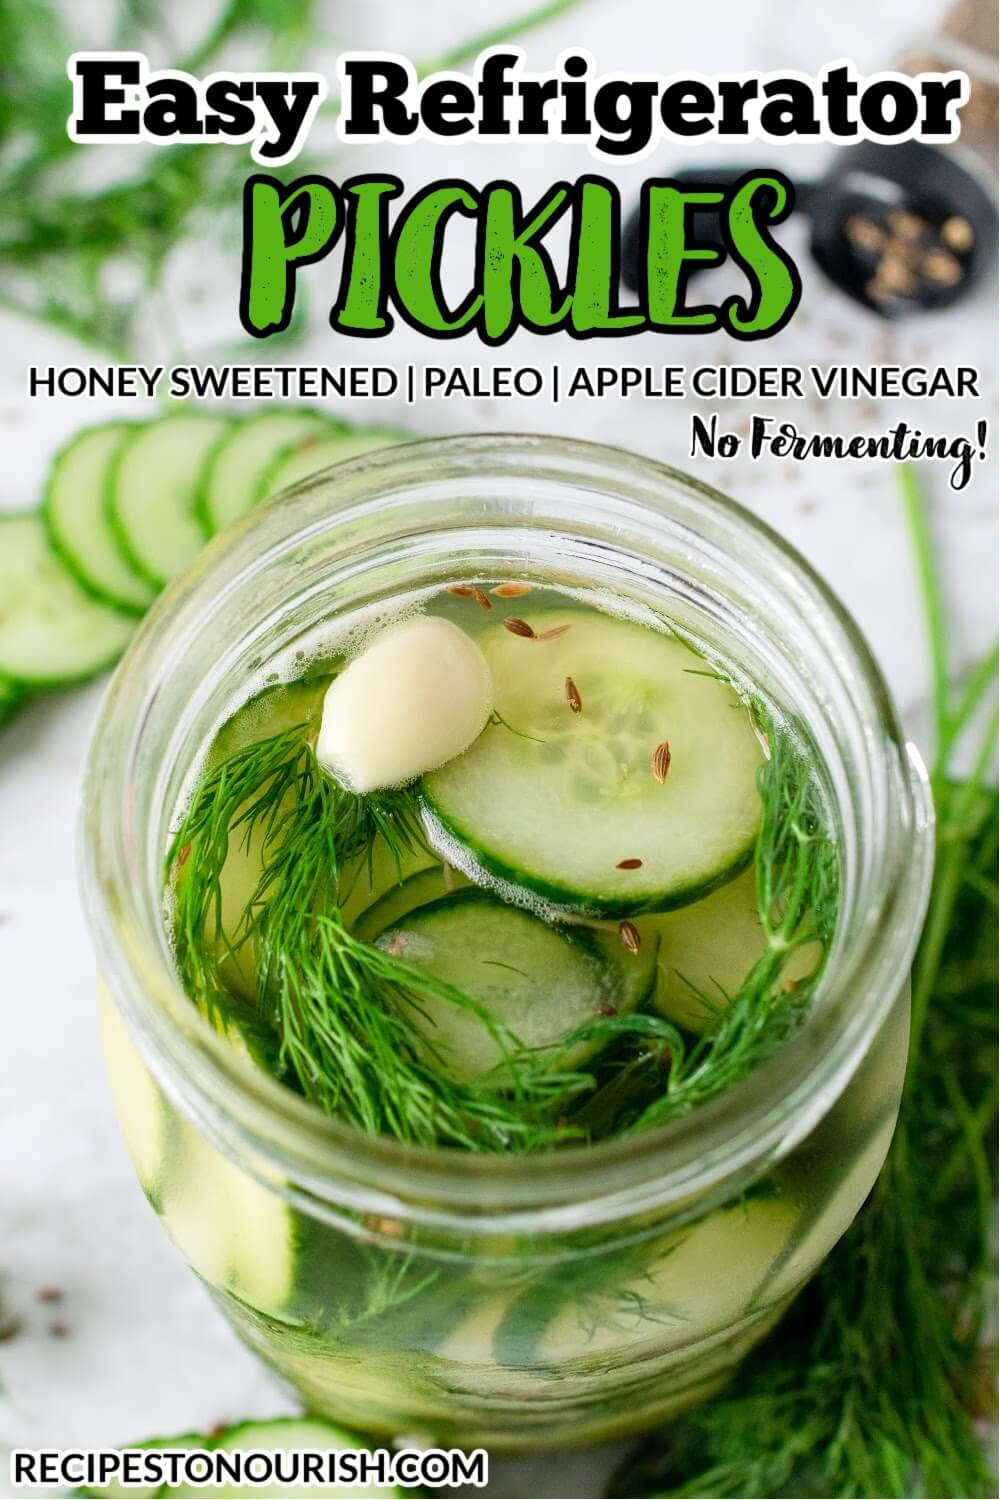 Mason jar filled with sliced pickles, fresh dill, garlic clove and liquid brine, surrounded by sliced cucumbers, fresh dill, spices and the text Easy Refrigerator Pickles.